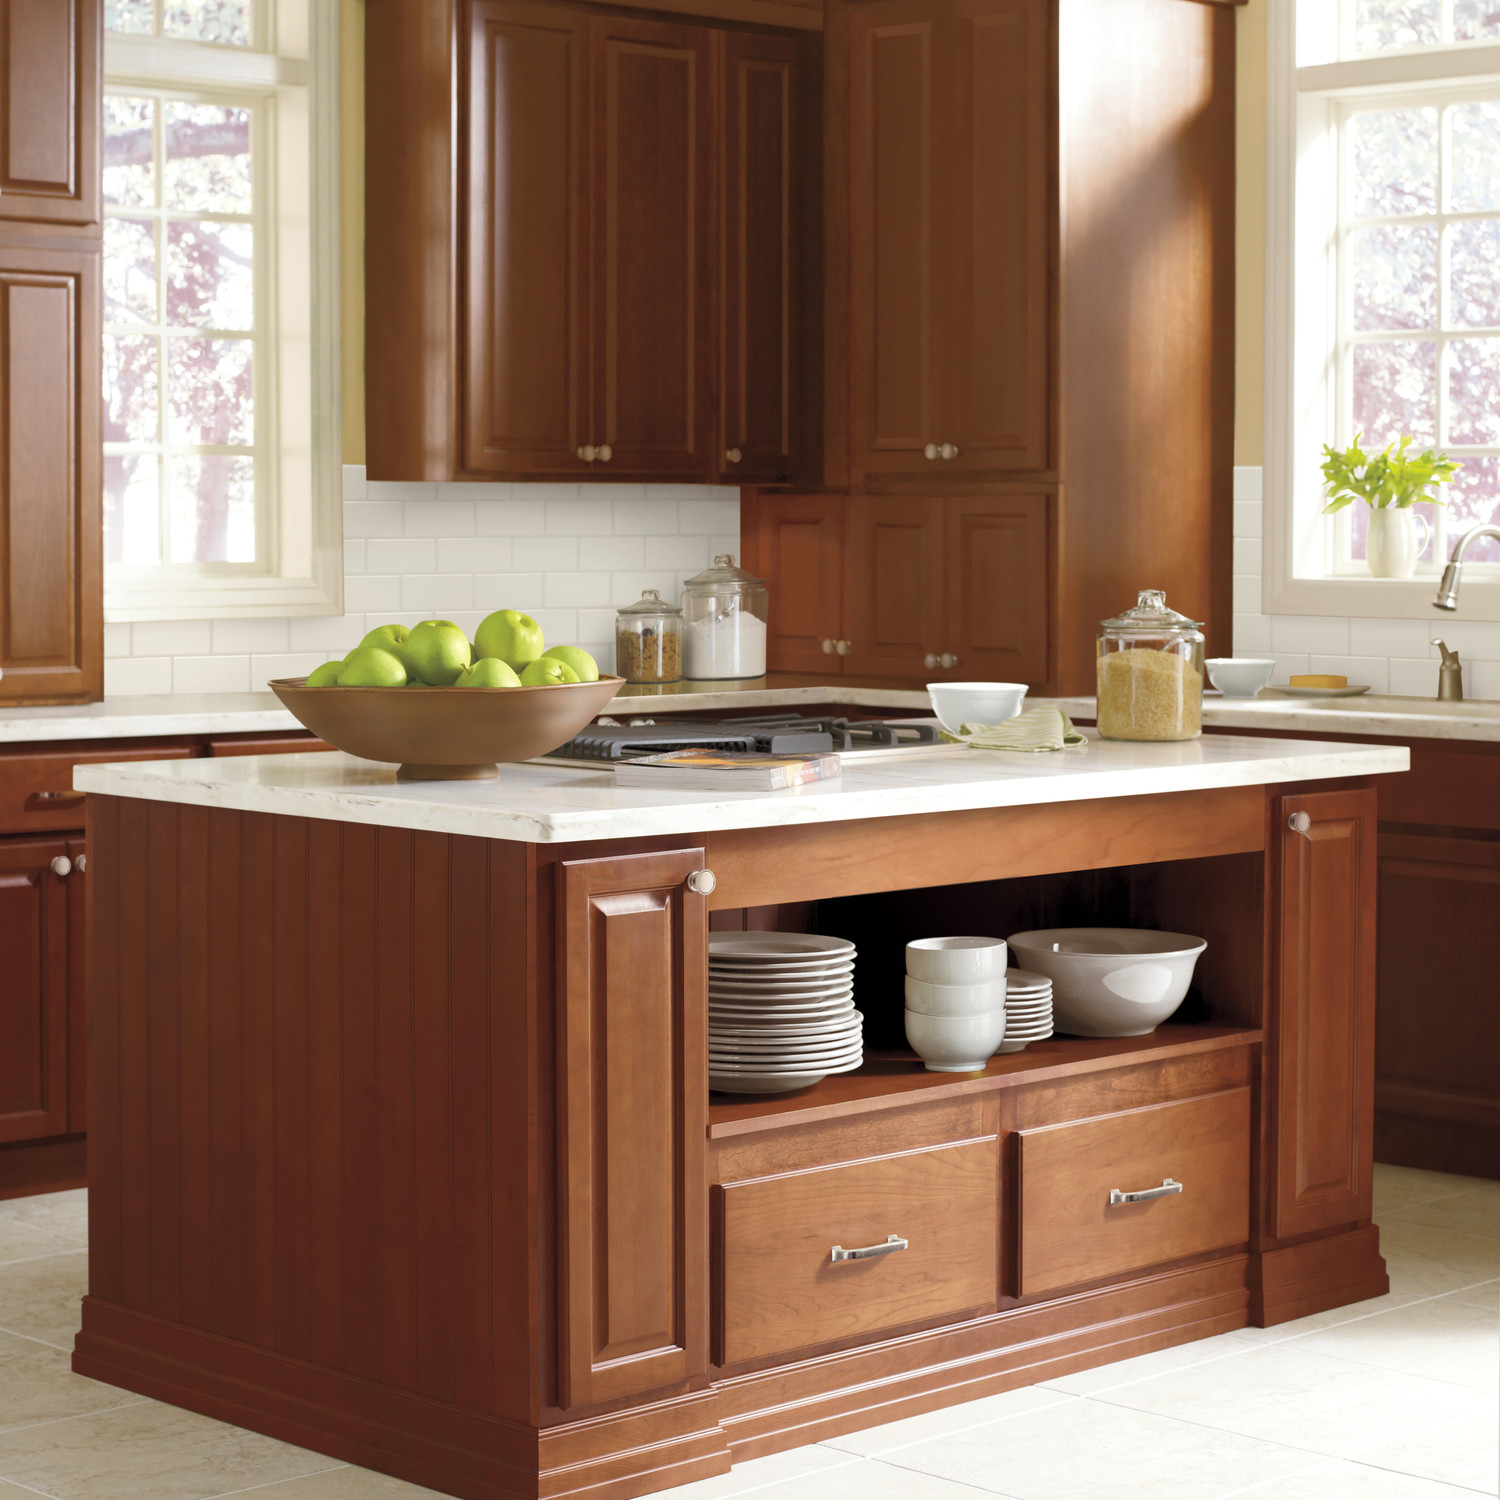 How To Properly Care For Your Kitchen Cabinets Martha Stewart